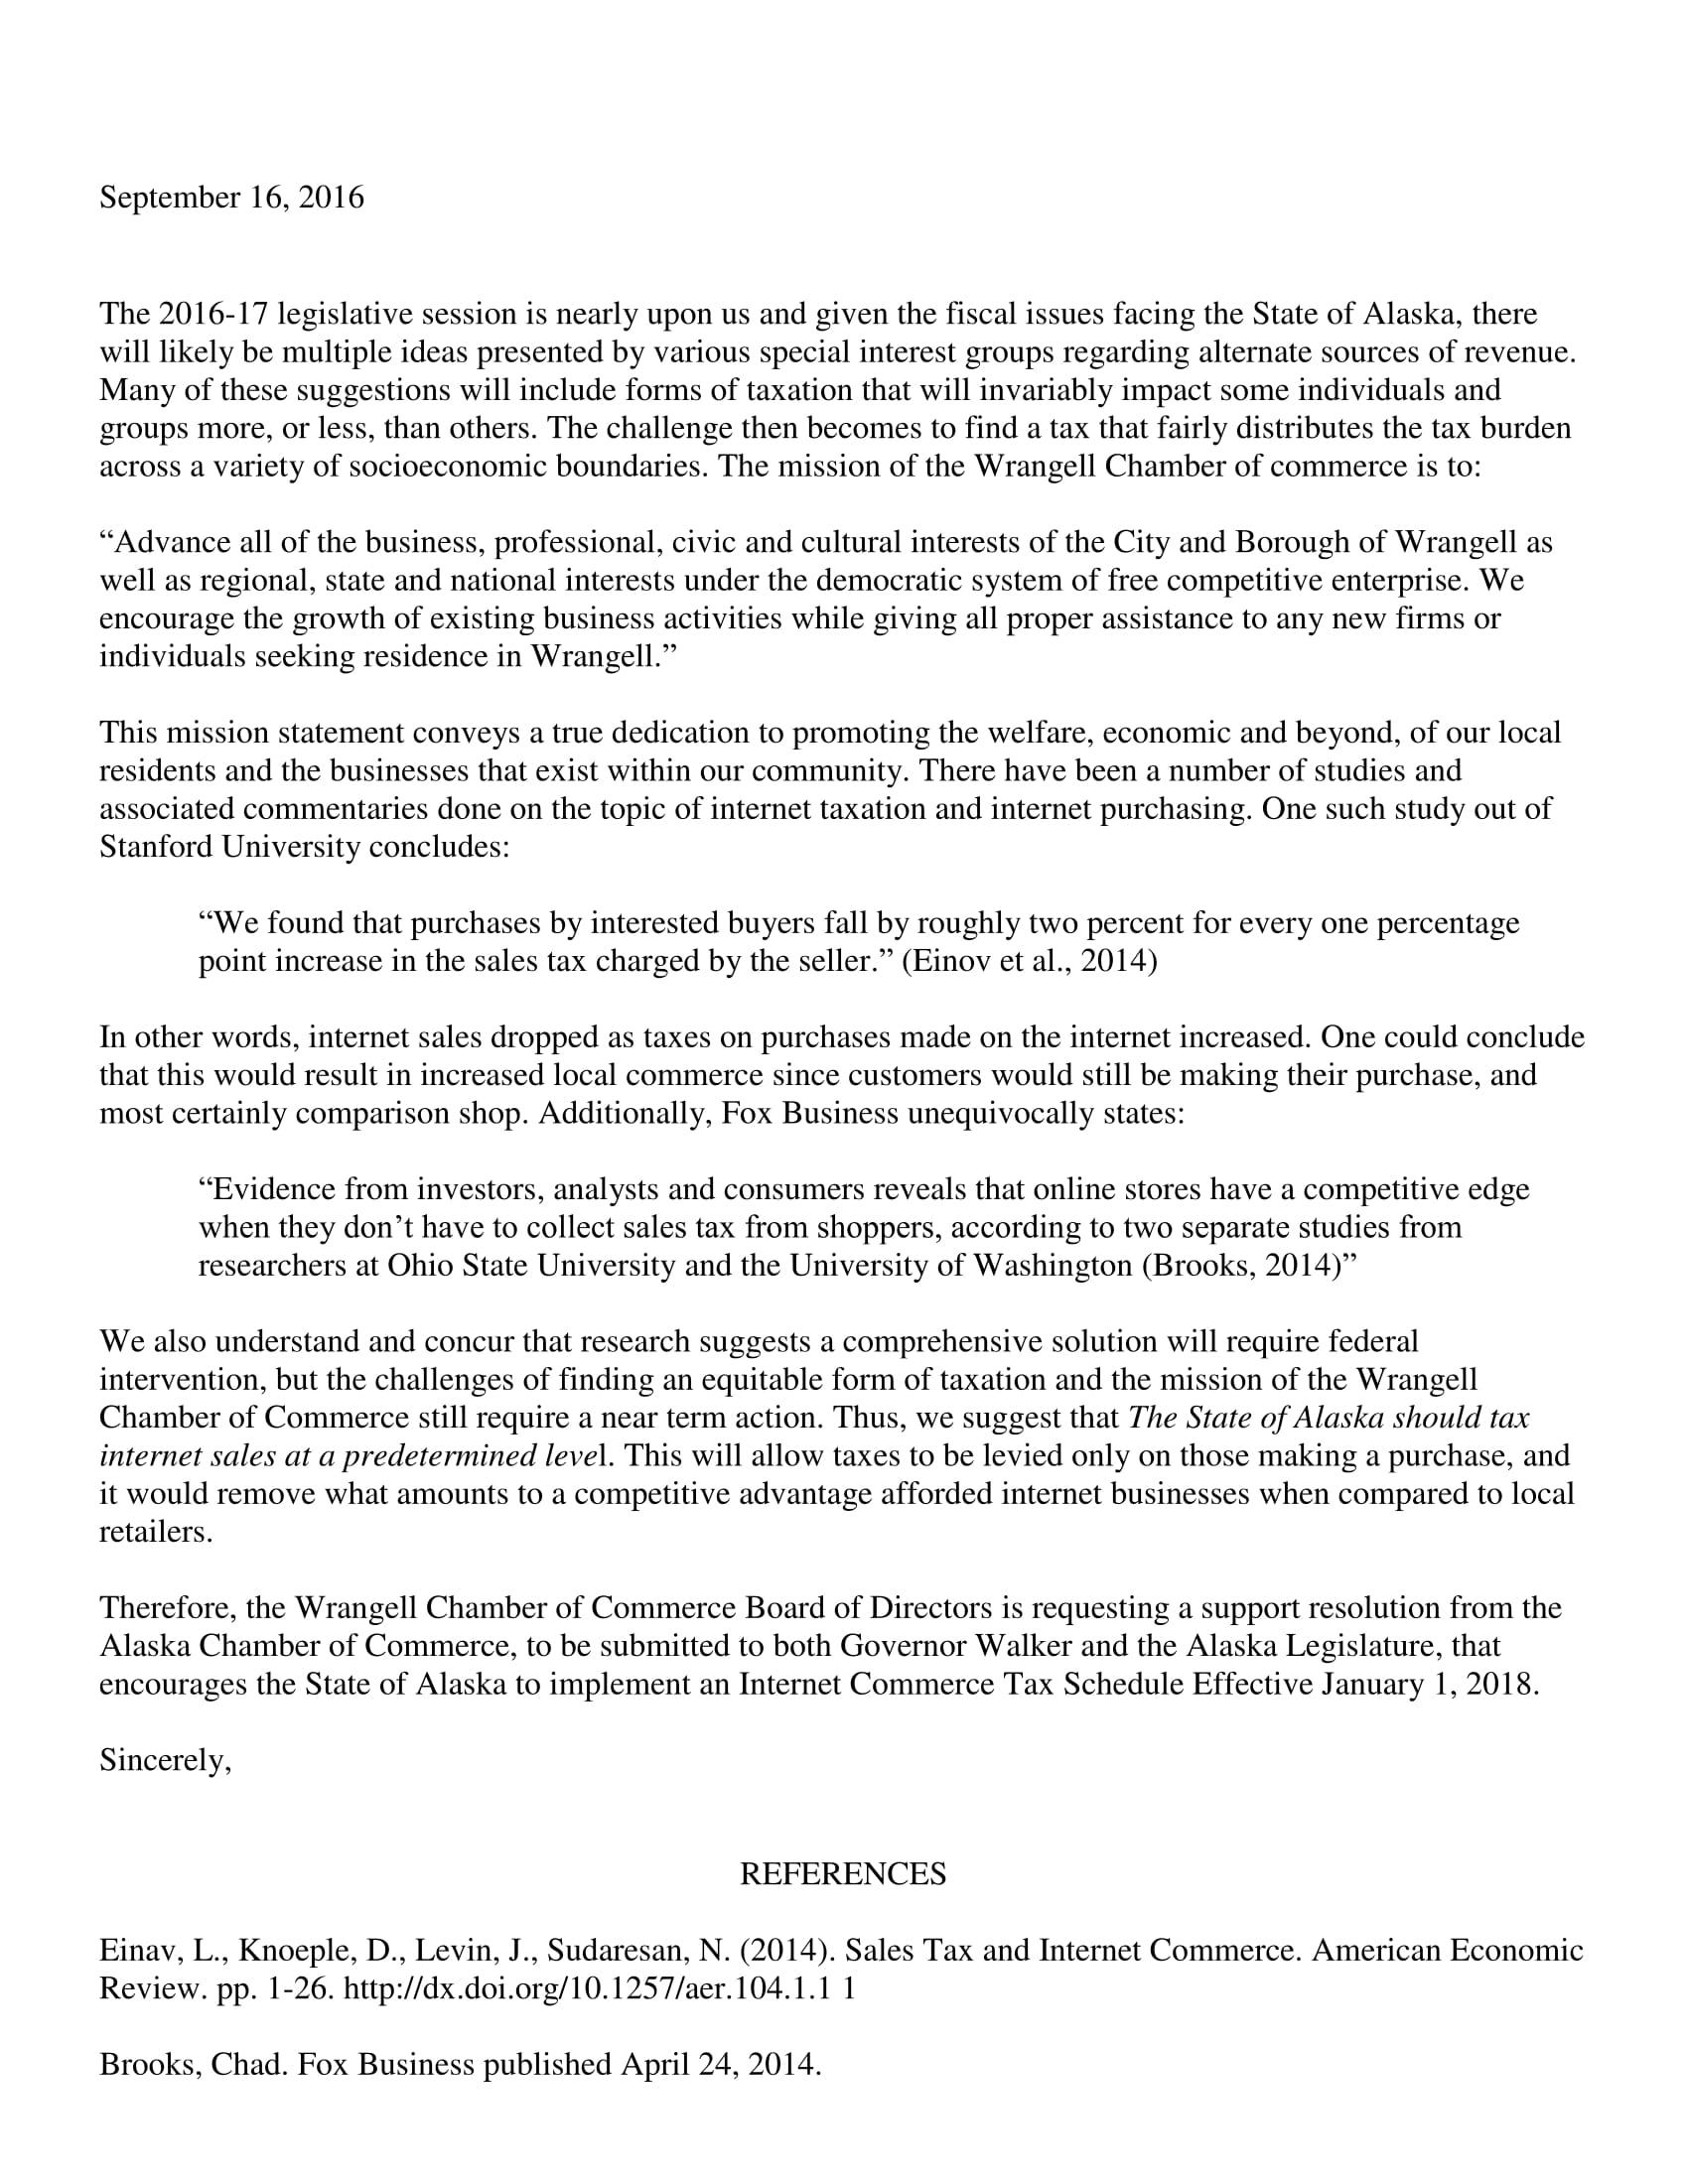 Wrangell Chamber of Commerce's letter to the Wrangell Assembly, Southeast Conference and the Alaska Chamber of Commerce.